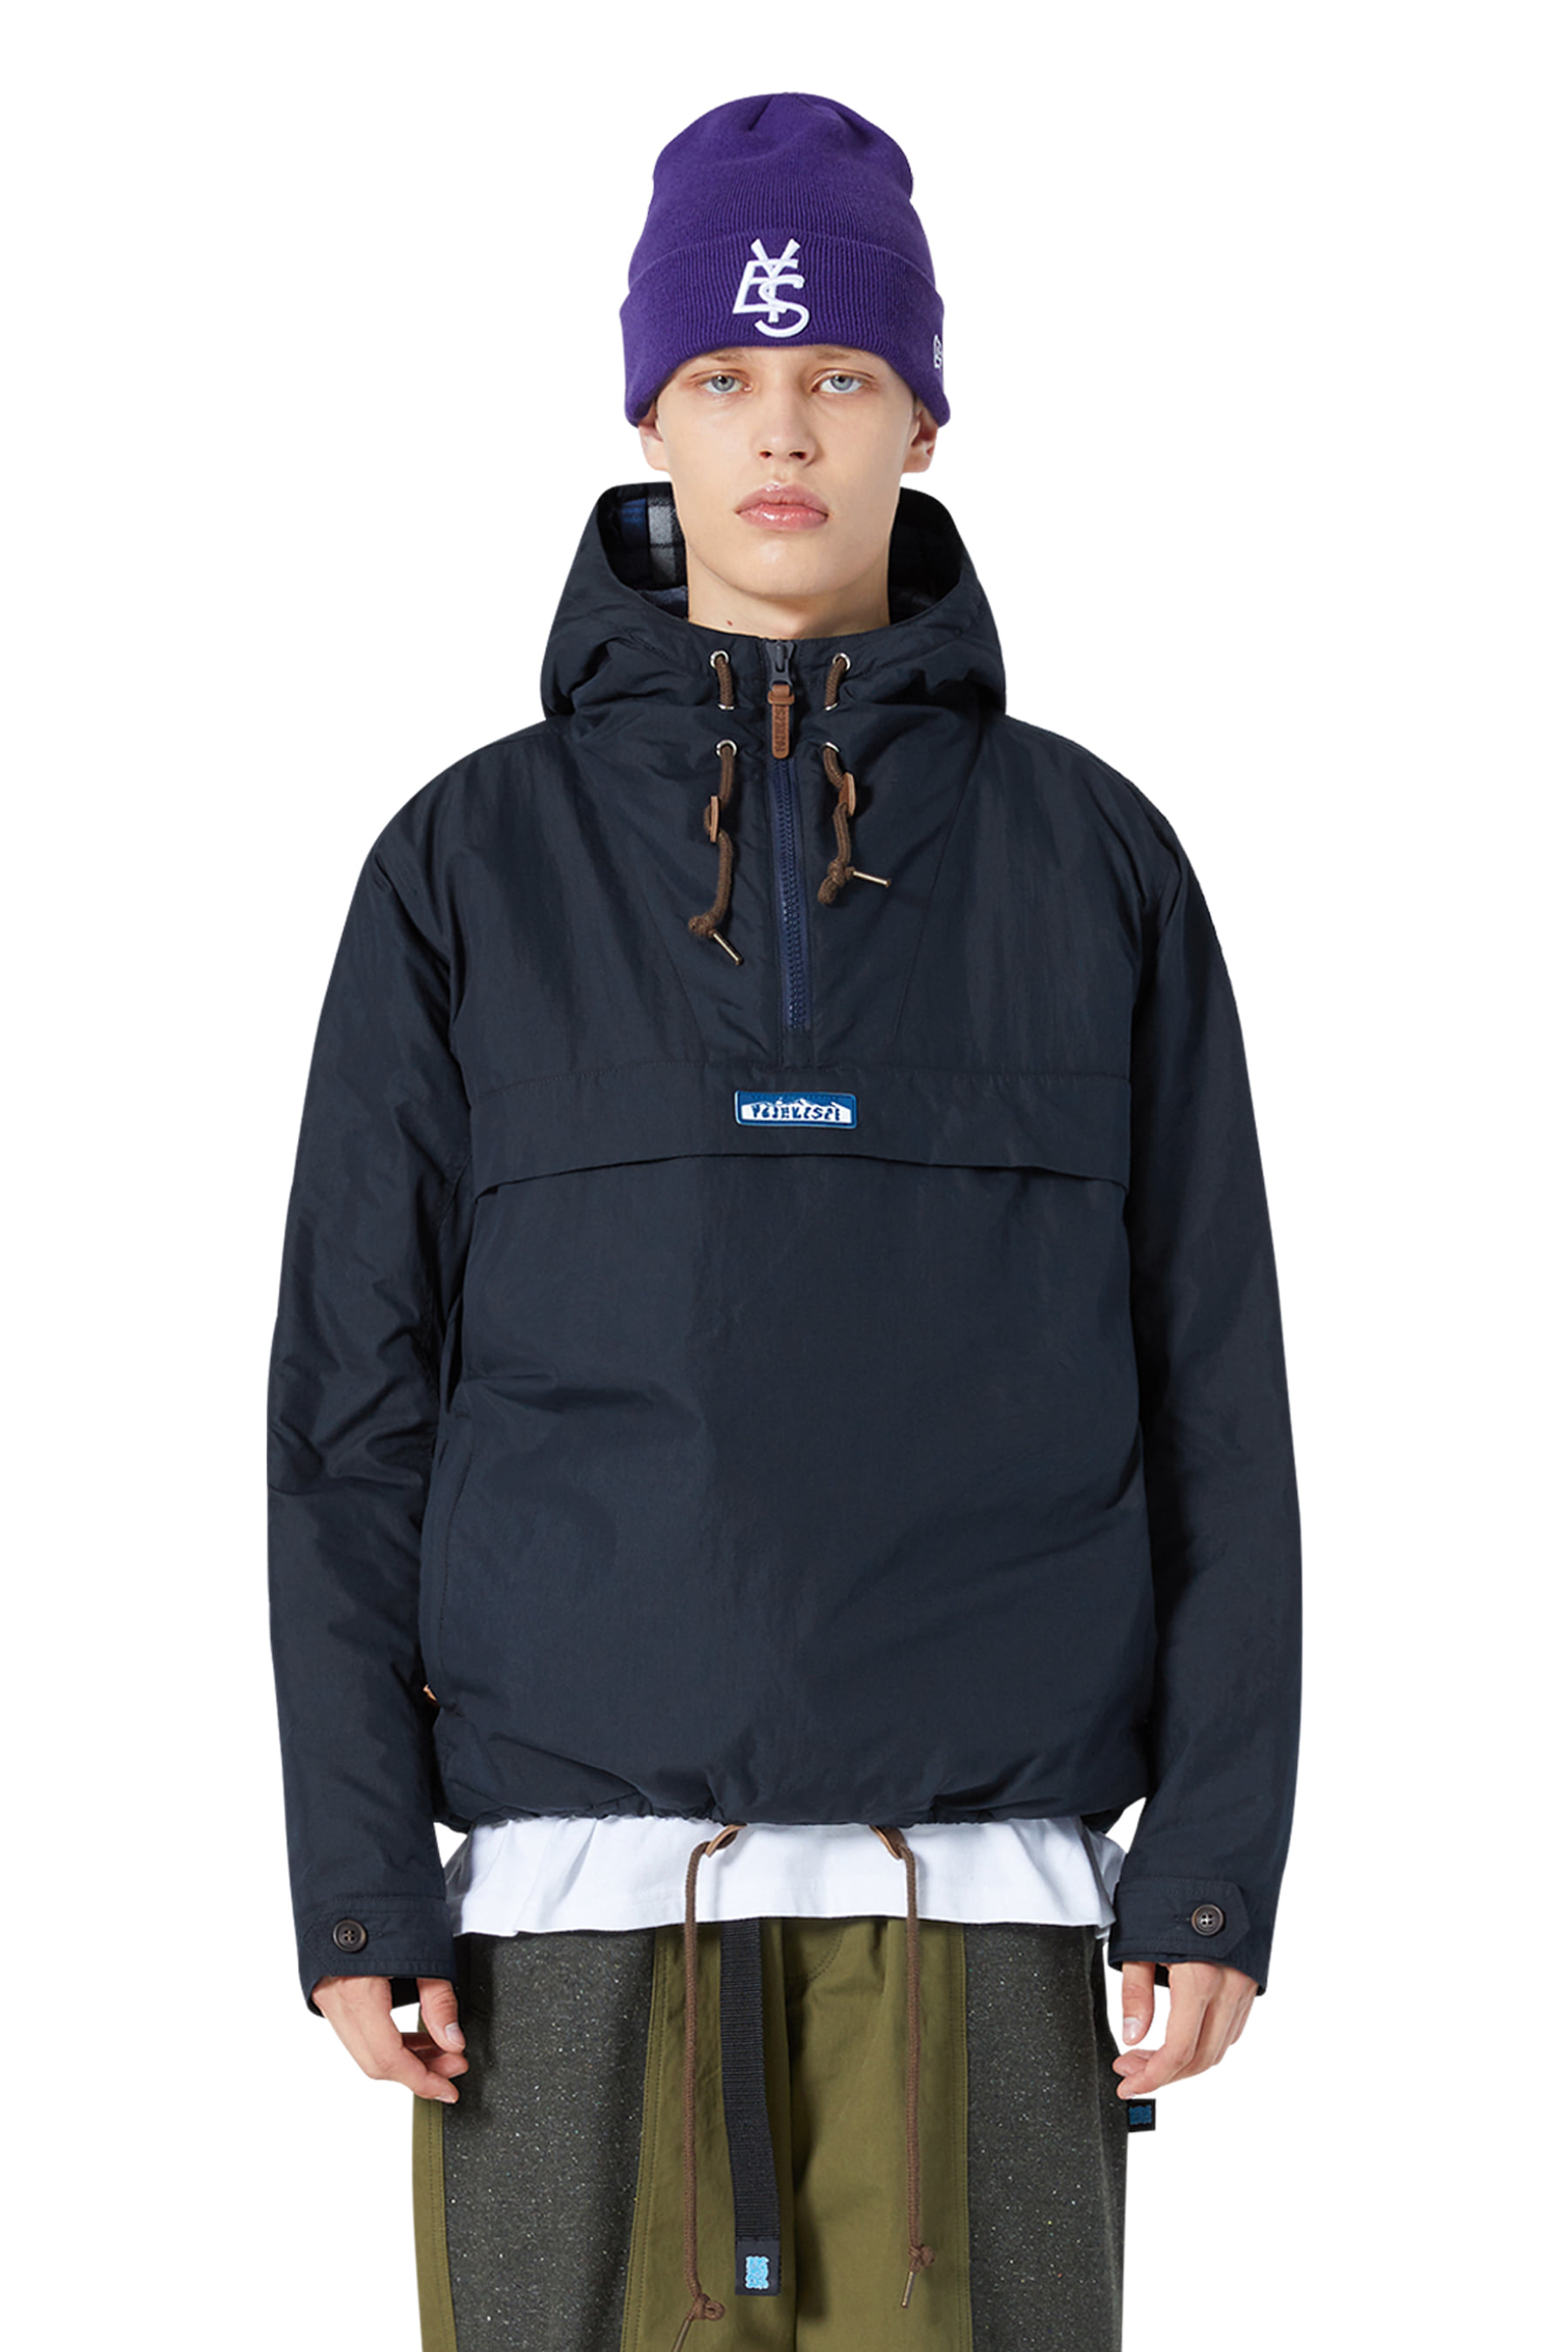 Y.E.S Mountain Anorak Navy